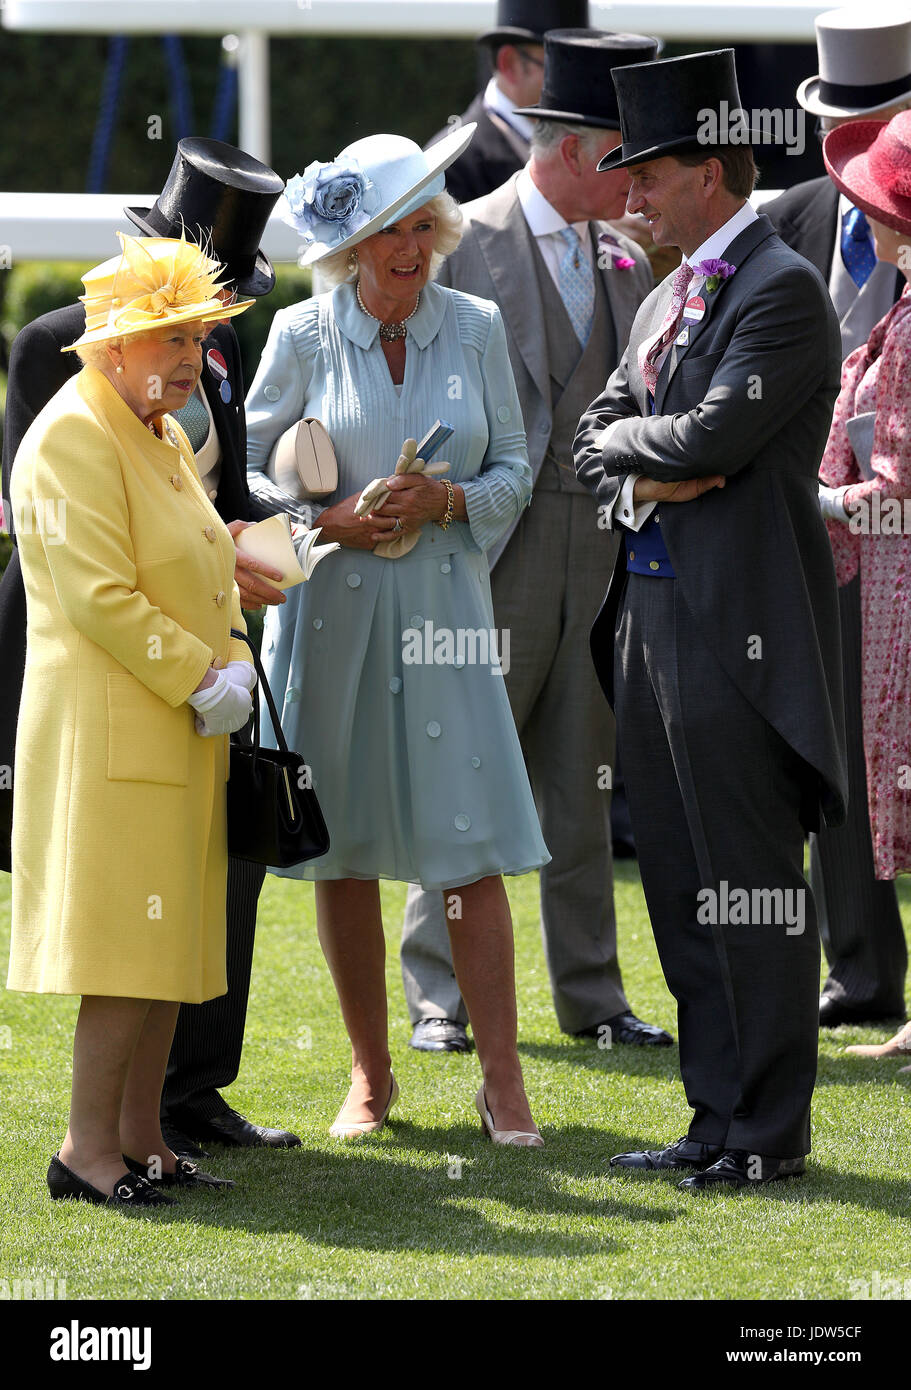 Her Majesty The Queen (left), The Duchess of Cornwall (centre) and Johnny Weatherby during day two of Royal Ascot - Stock Image